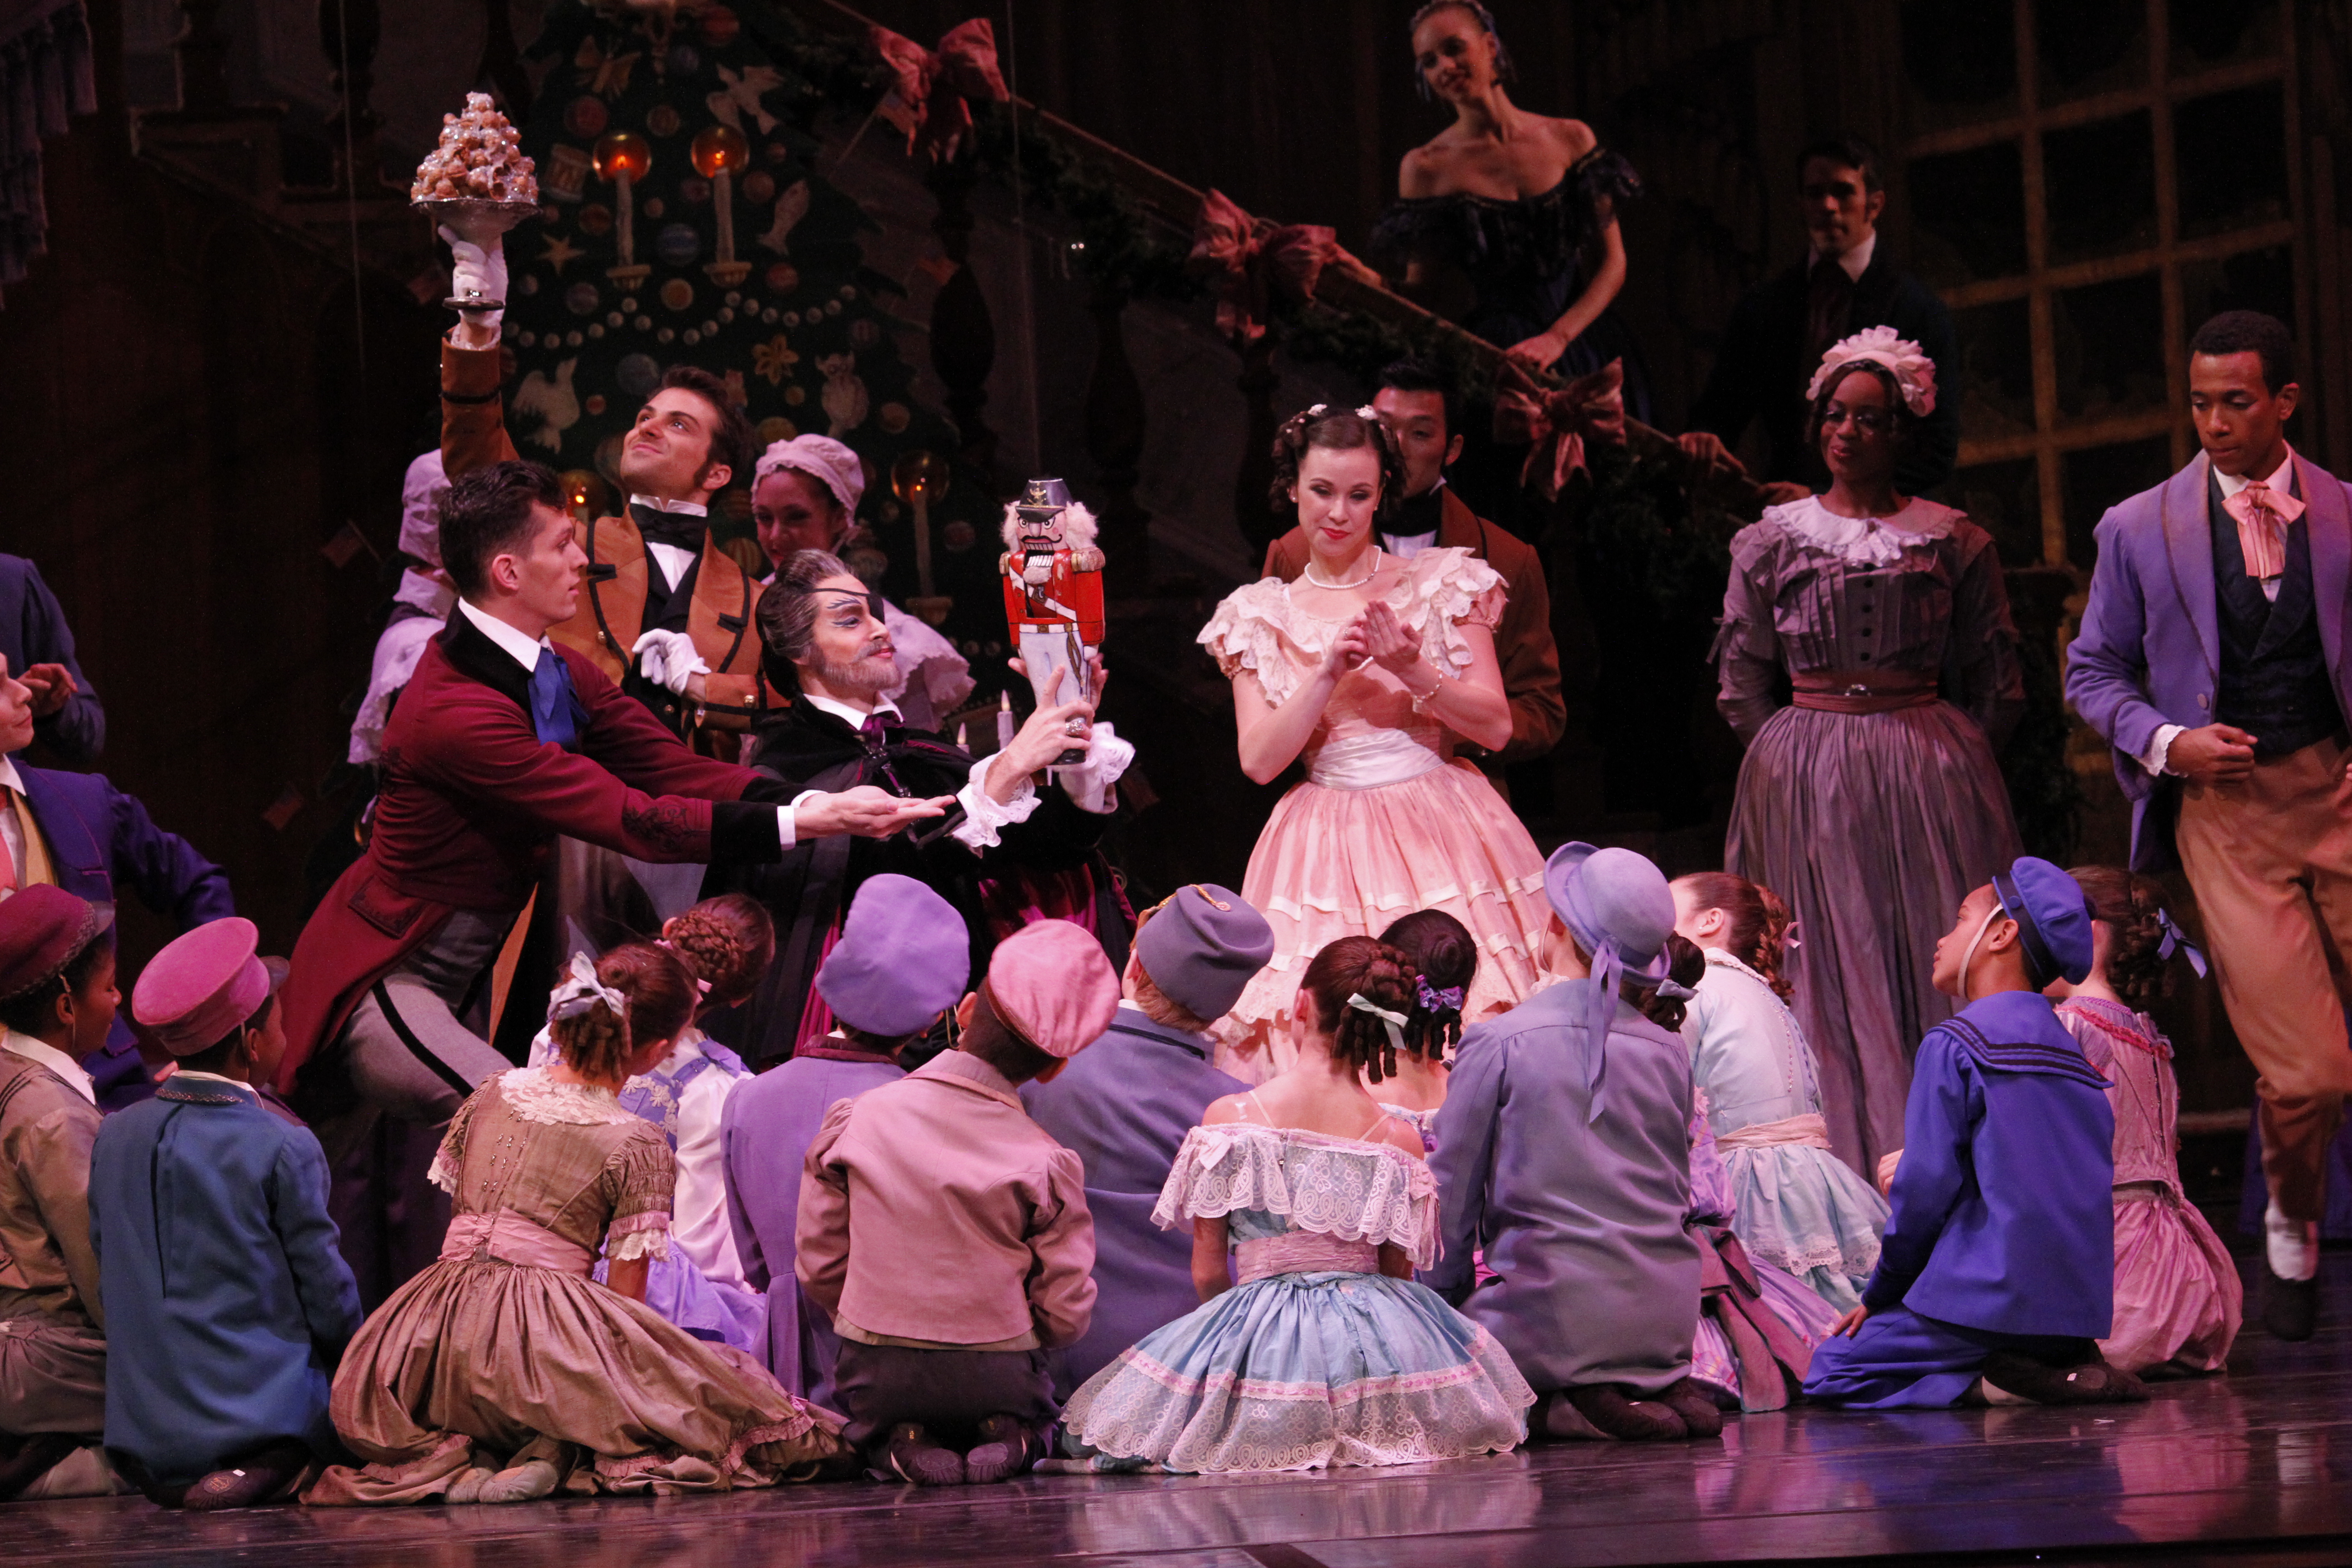 A Nutcracker Christmas Cast.Dance Review The Nutcracker Joffrey Ballet In Chicago